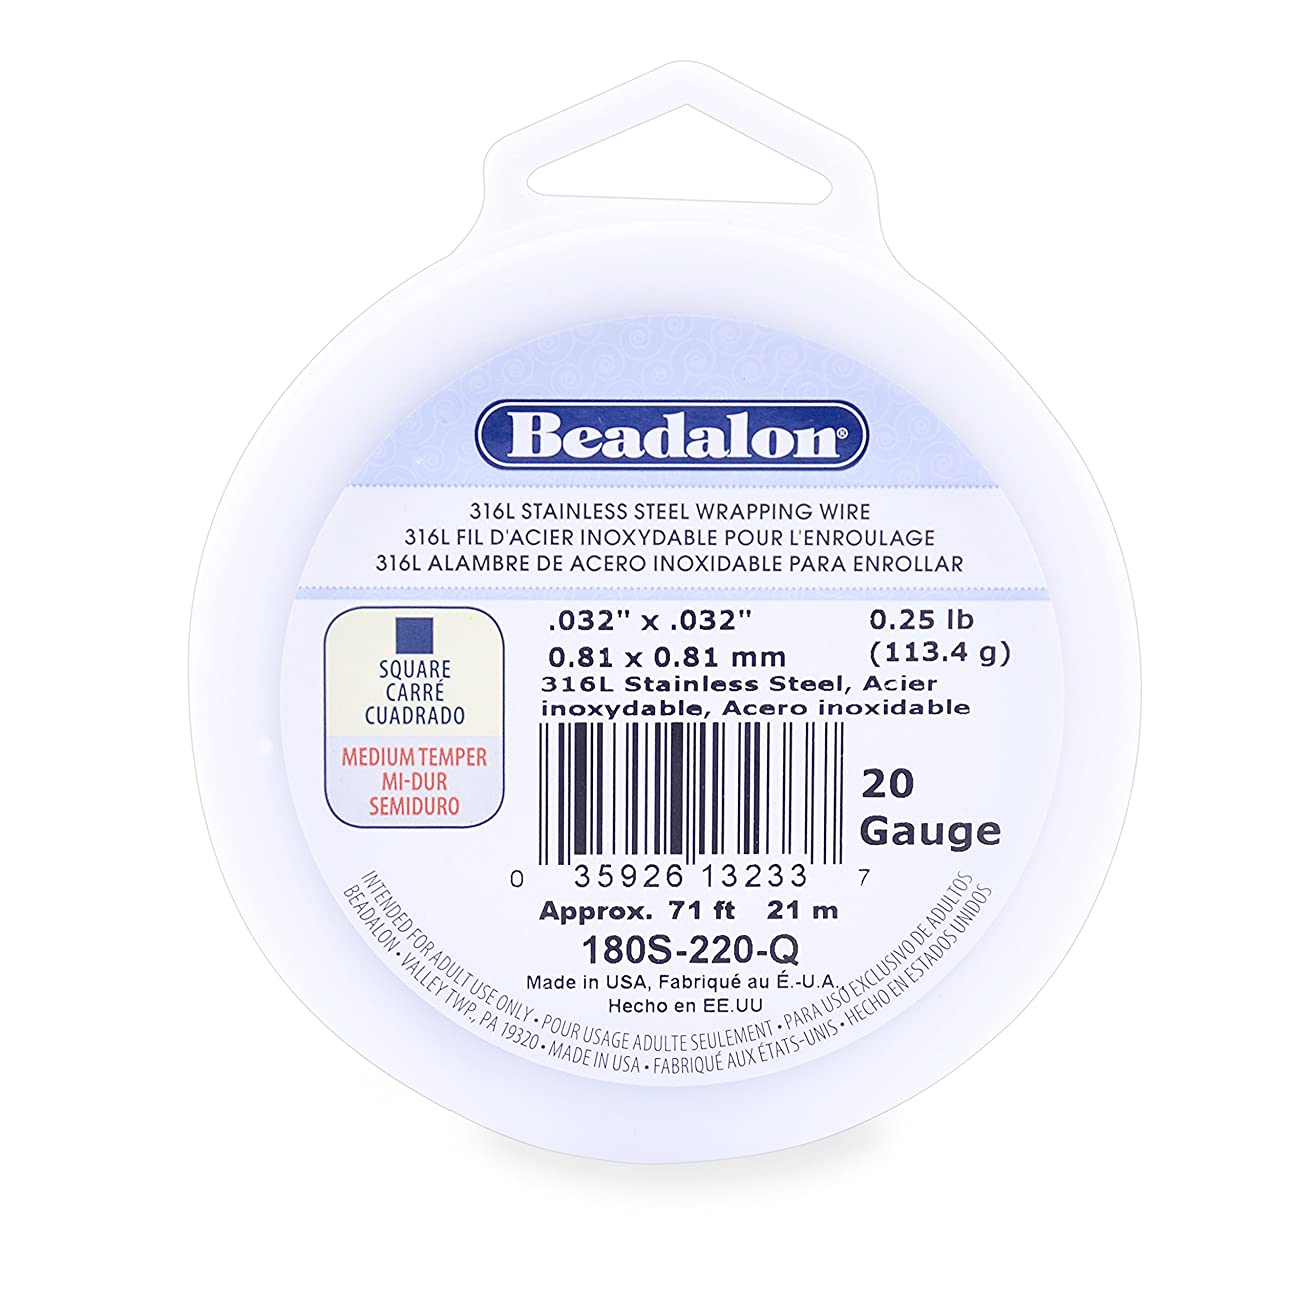 Beadalon 316L Stainless Steel Wrapping Wire, Square, 20 Gauge, 71 feet, 1/4 Pound